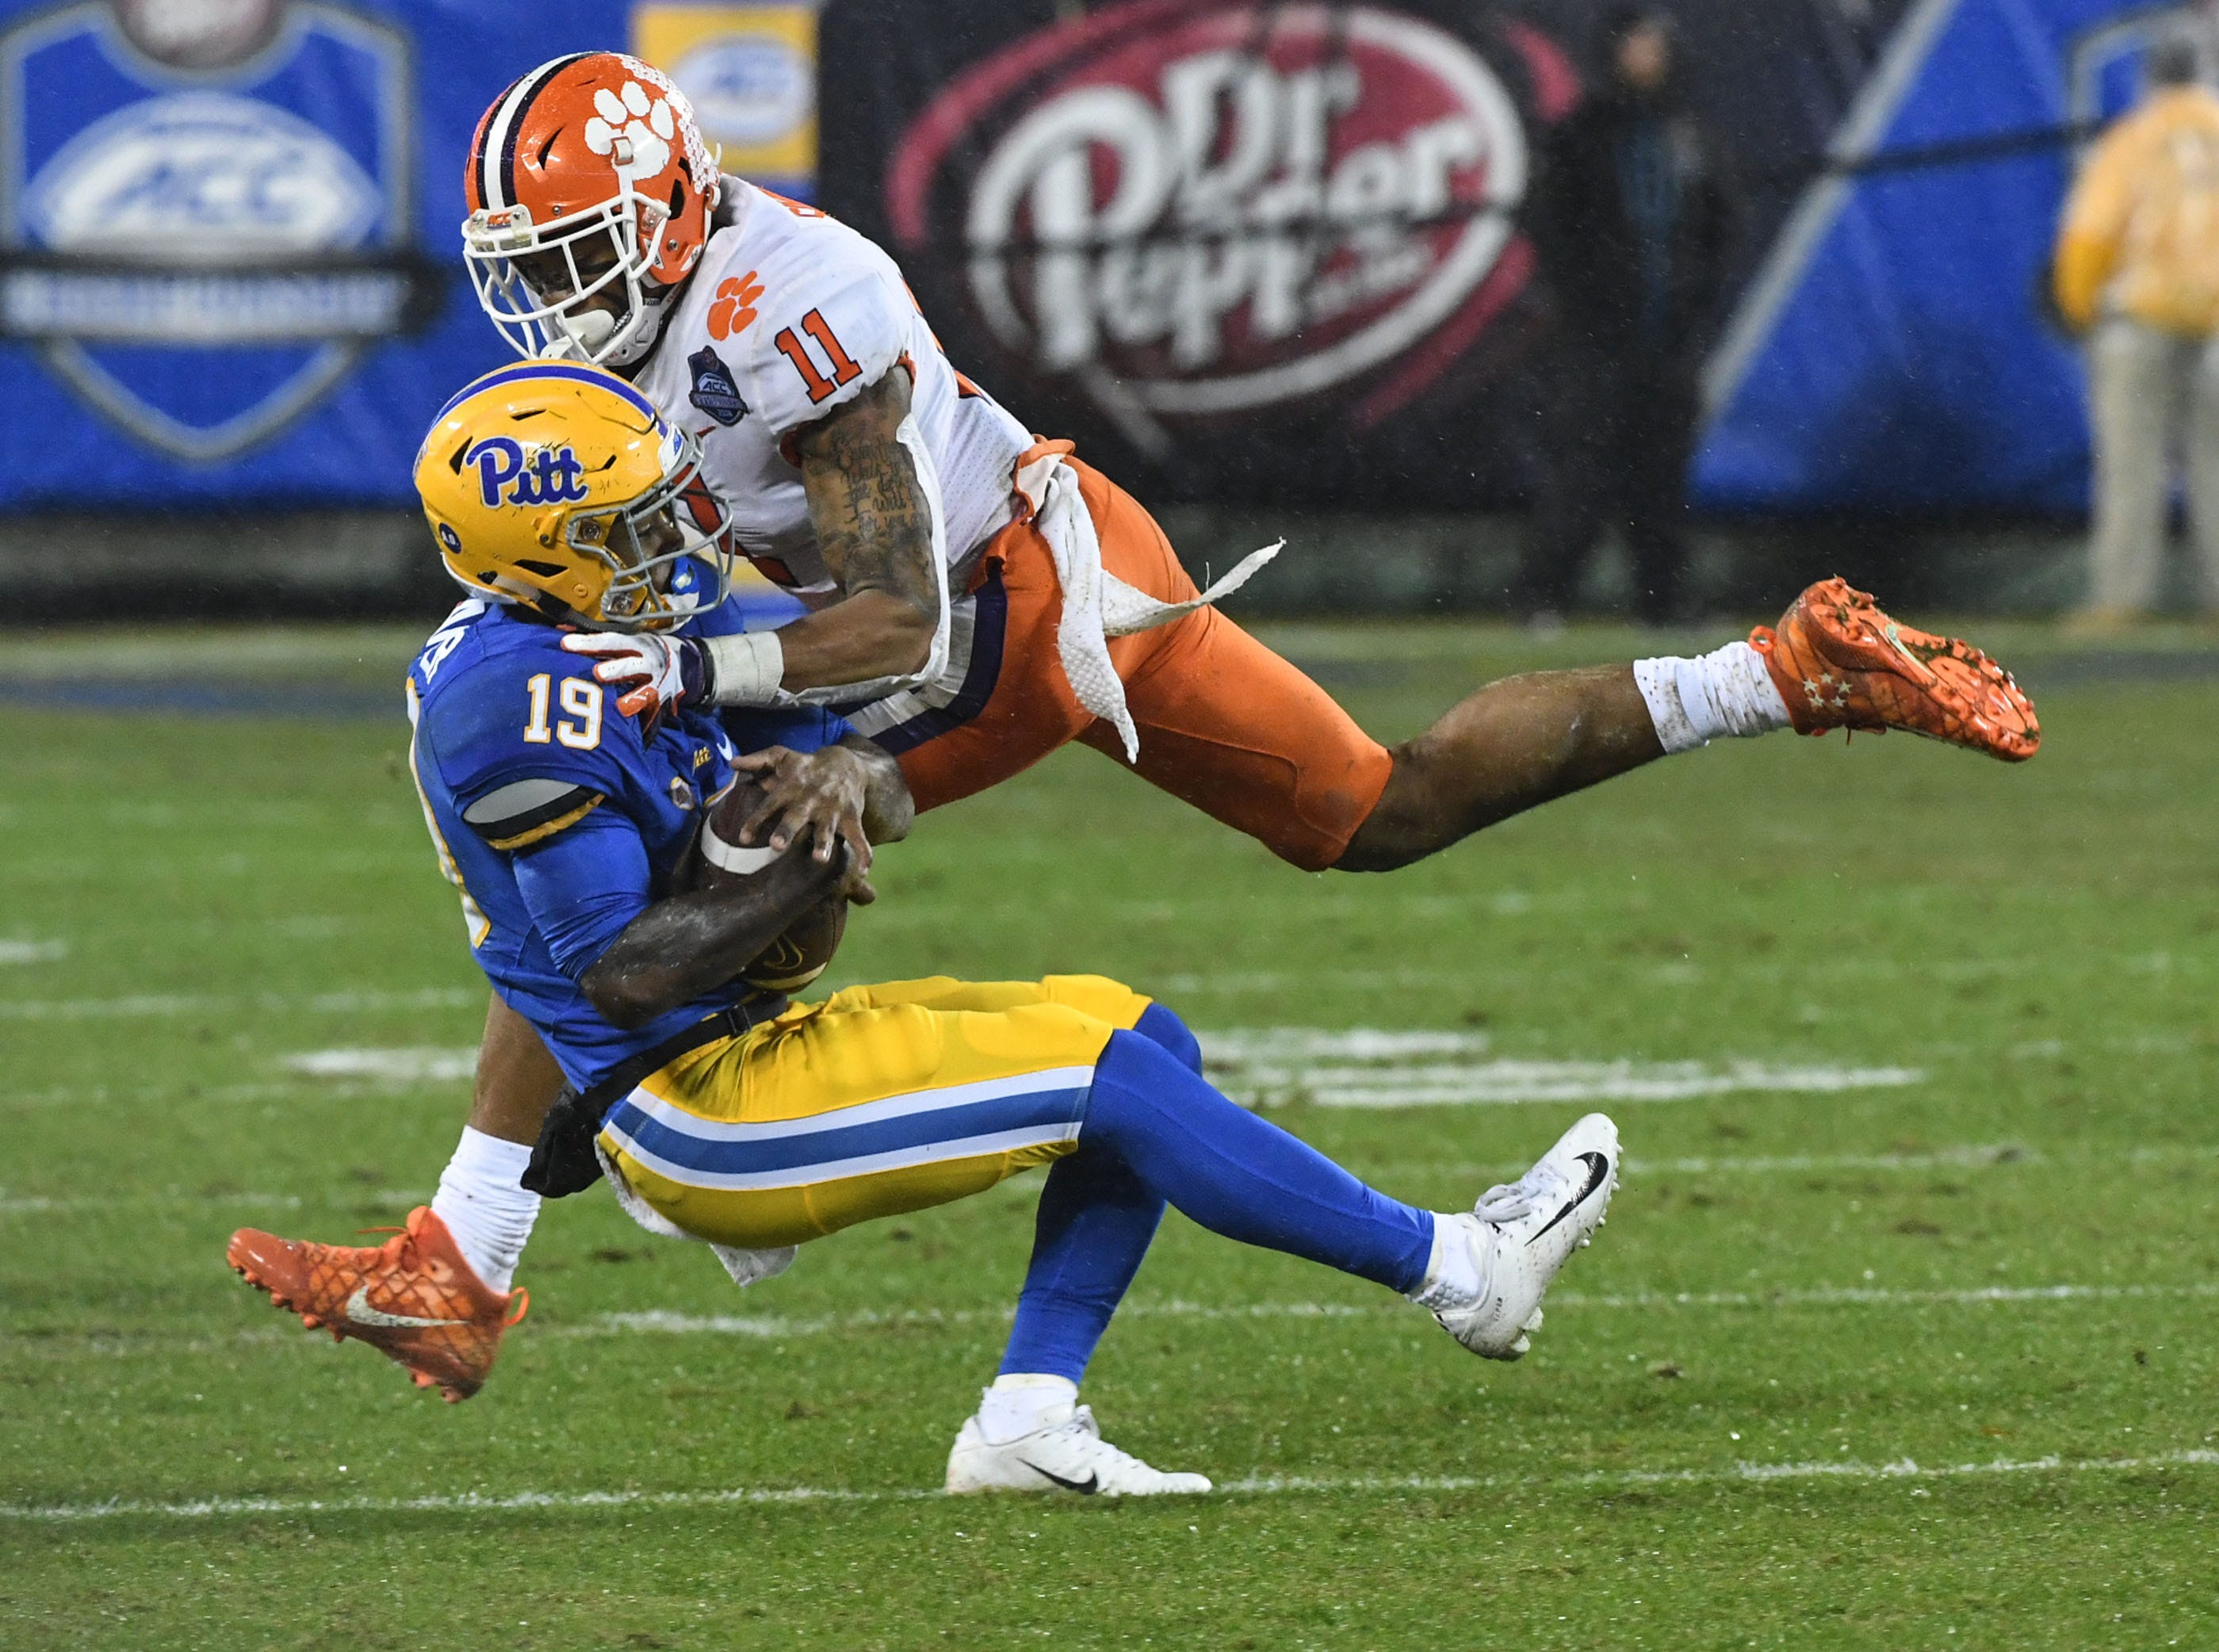 Clemson safety Isaiah Simmons (11) tackles Pittsburgh receiver V'Lique Carter during the second quarter of the Dr. Pepper ACC football championship at Bank of America Stadium in Charlotte, N.C. on Saturday, December 1, 2018.